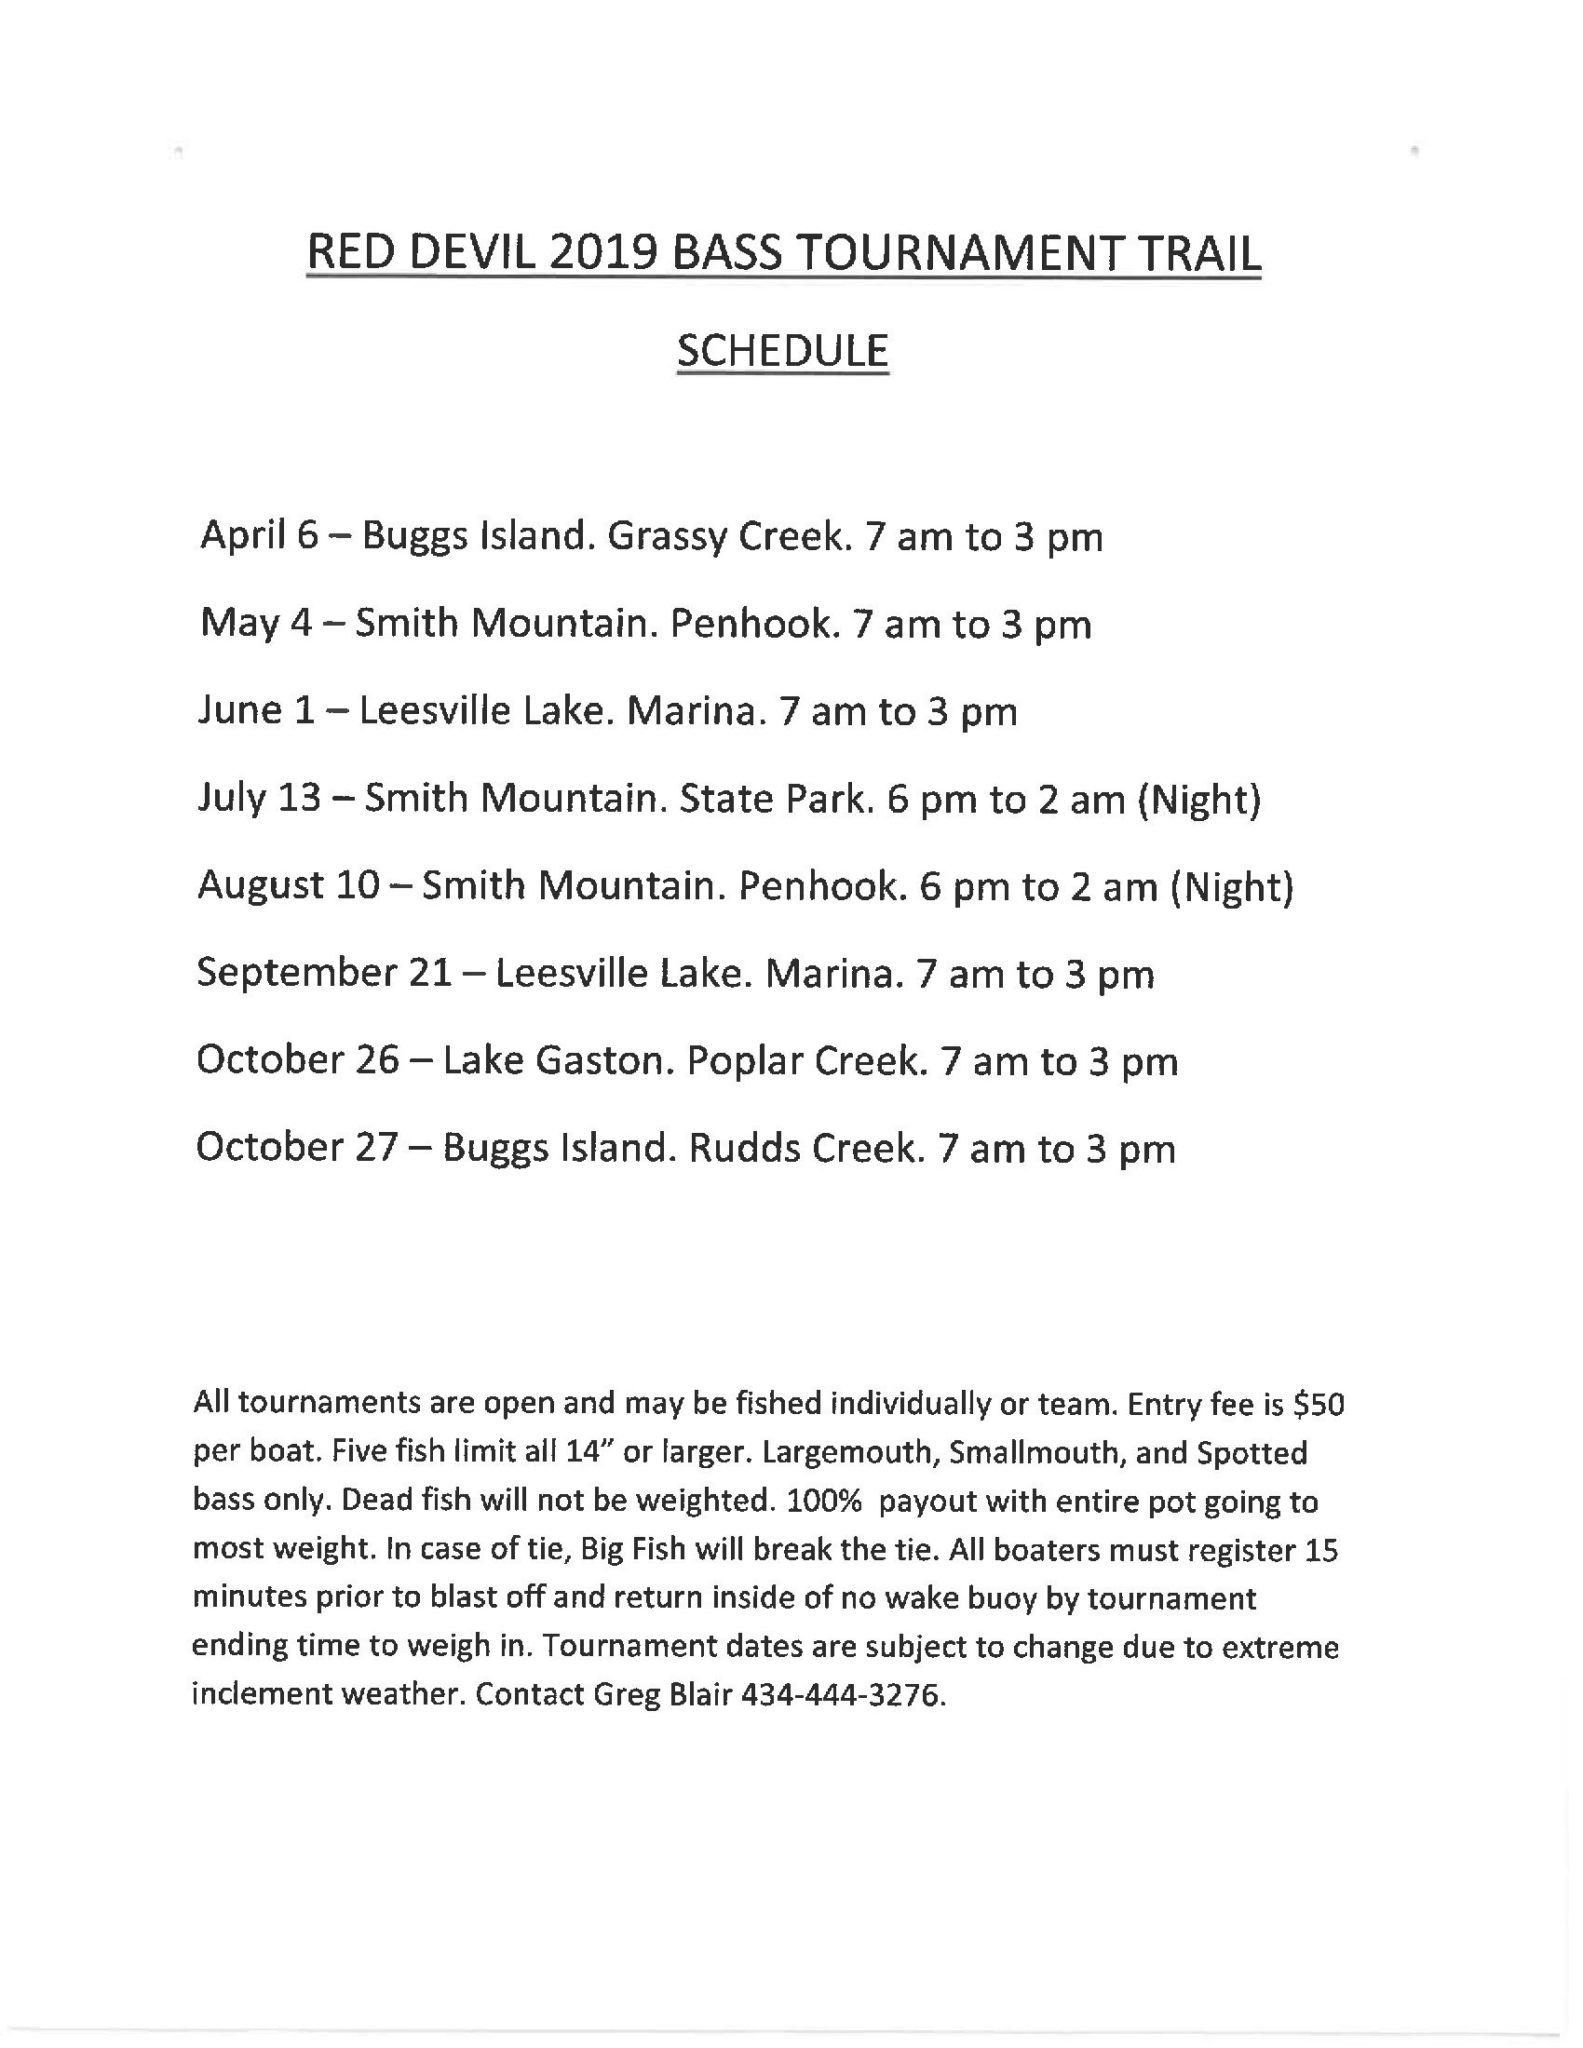 Red Devil 2019 Tournament Schedule